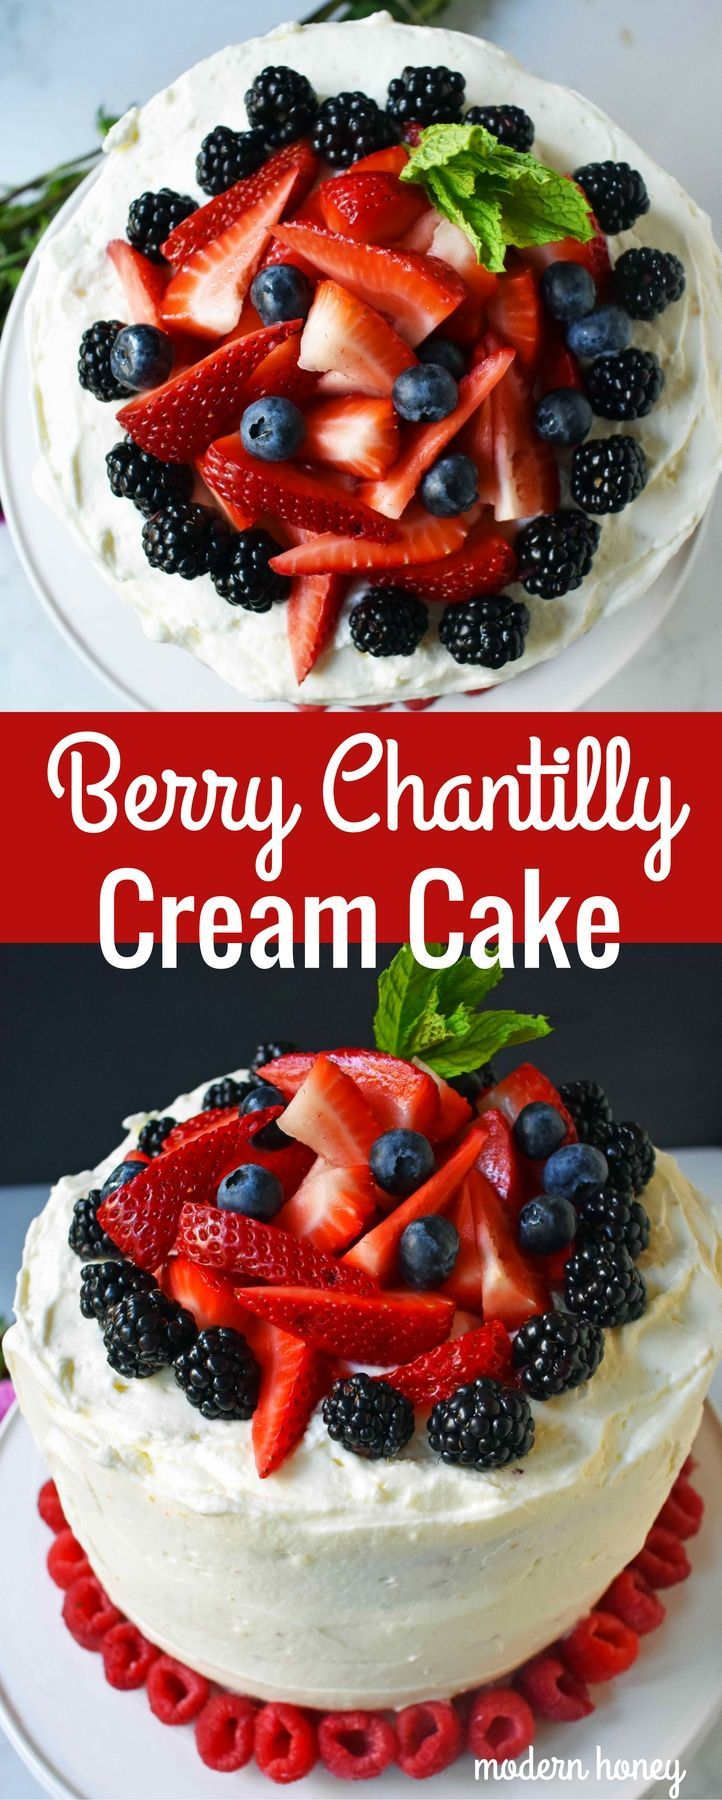 Berry Chantilly Cream Cake. Homemade 5 Star Rated Yellow Cake layered with chantilly cream frosting and fresh berries.  A perfect Spring, Summer, or Mother's Day dessert. A gorgeous popular fresh fruit cake.  www.modernhoney.com